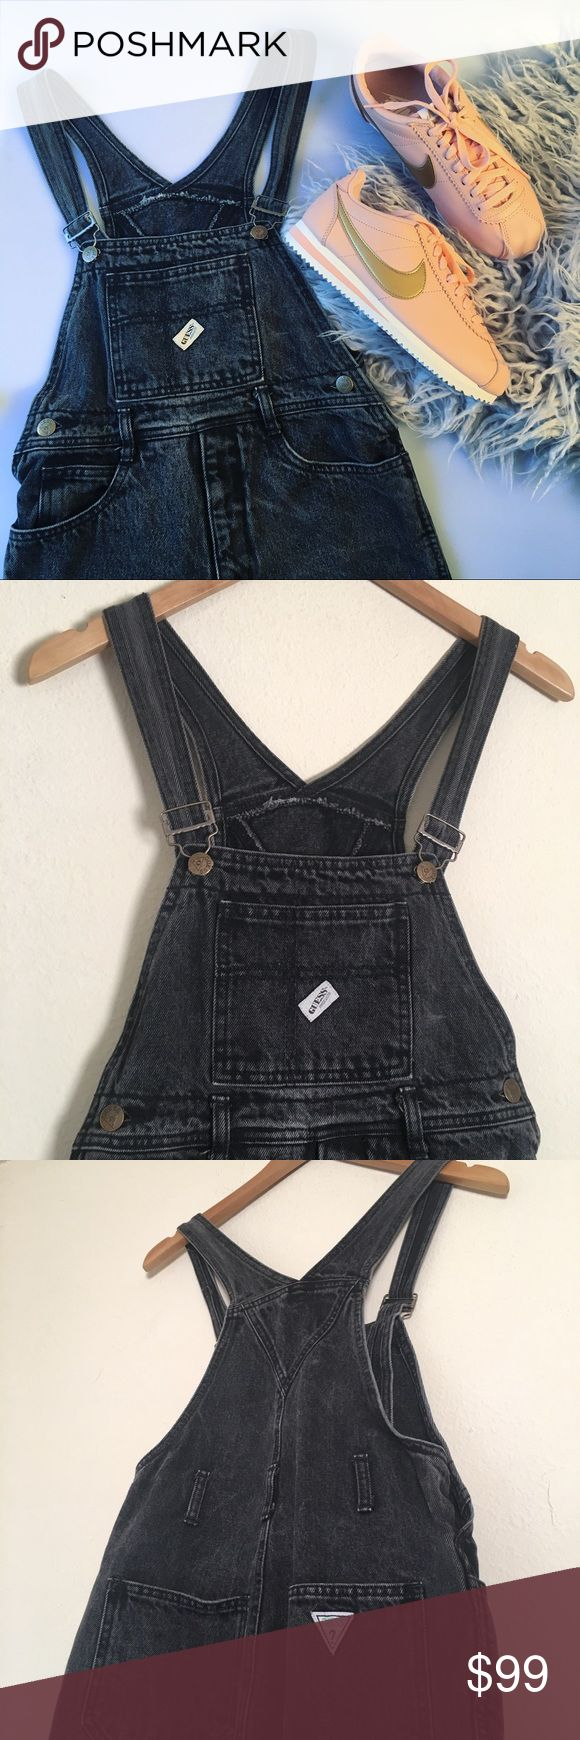 Vintage Guess Overalls Small Amazing charcoal/black Guess jeans overalls from the 90s. Vintage runs small. Great used condition. Measurements when laid flat: inseam 22 inches, waist below the belt line 15 inches, length from the front rim to the crotch is 19 inches. The straps are adjustable. Will consider reasonable offers. Guess by Marciano Jeans Overalls